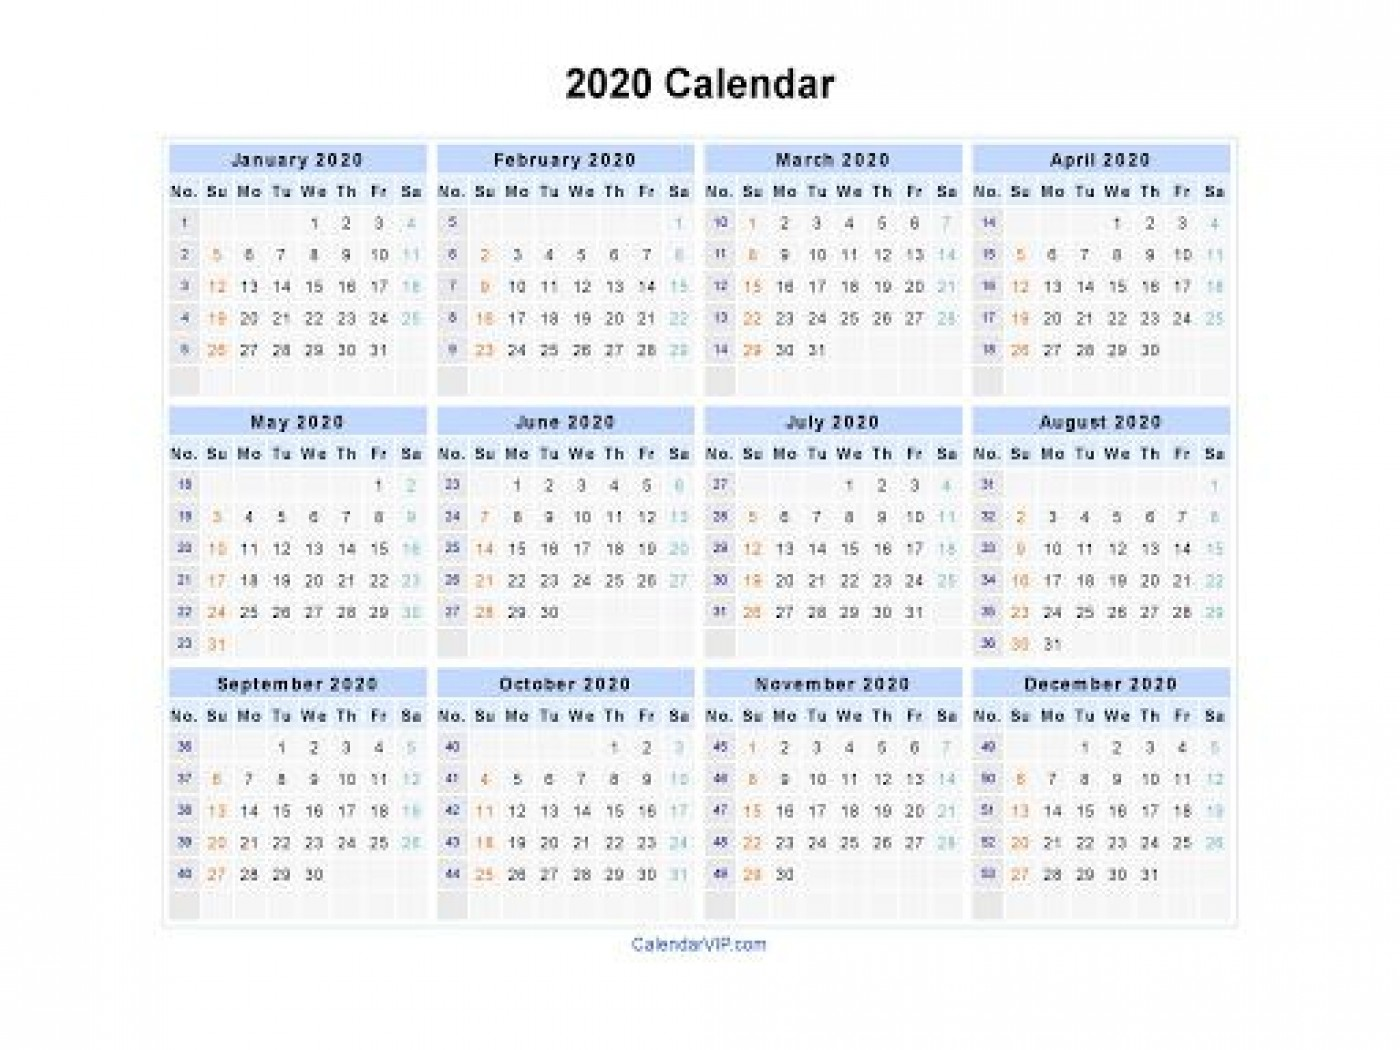 008 Fascinating Microsoft Calendar Template 2020 Highest Quality  Publisher Office Free1400